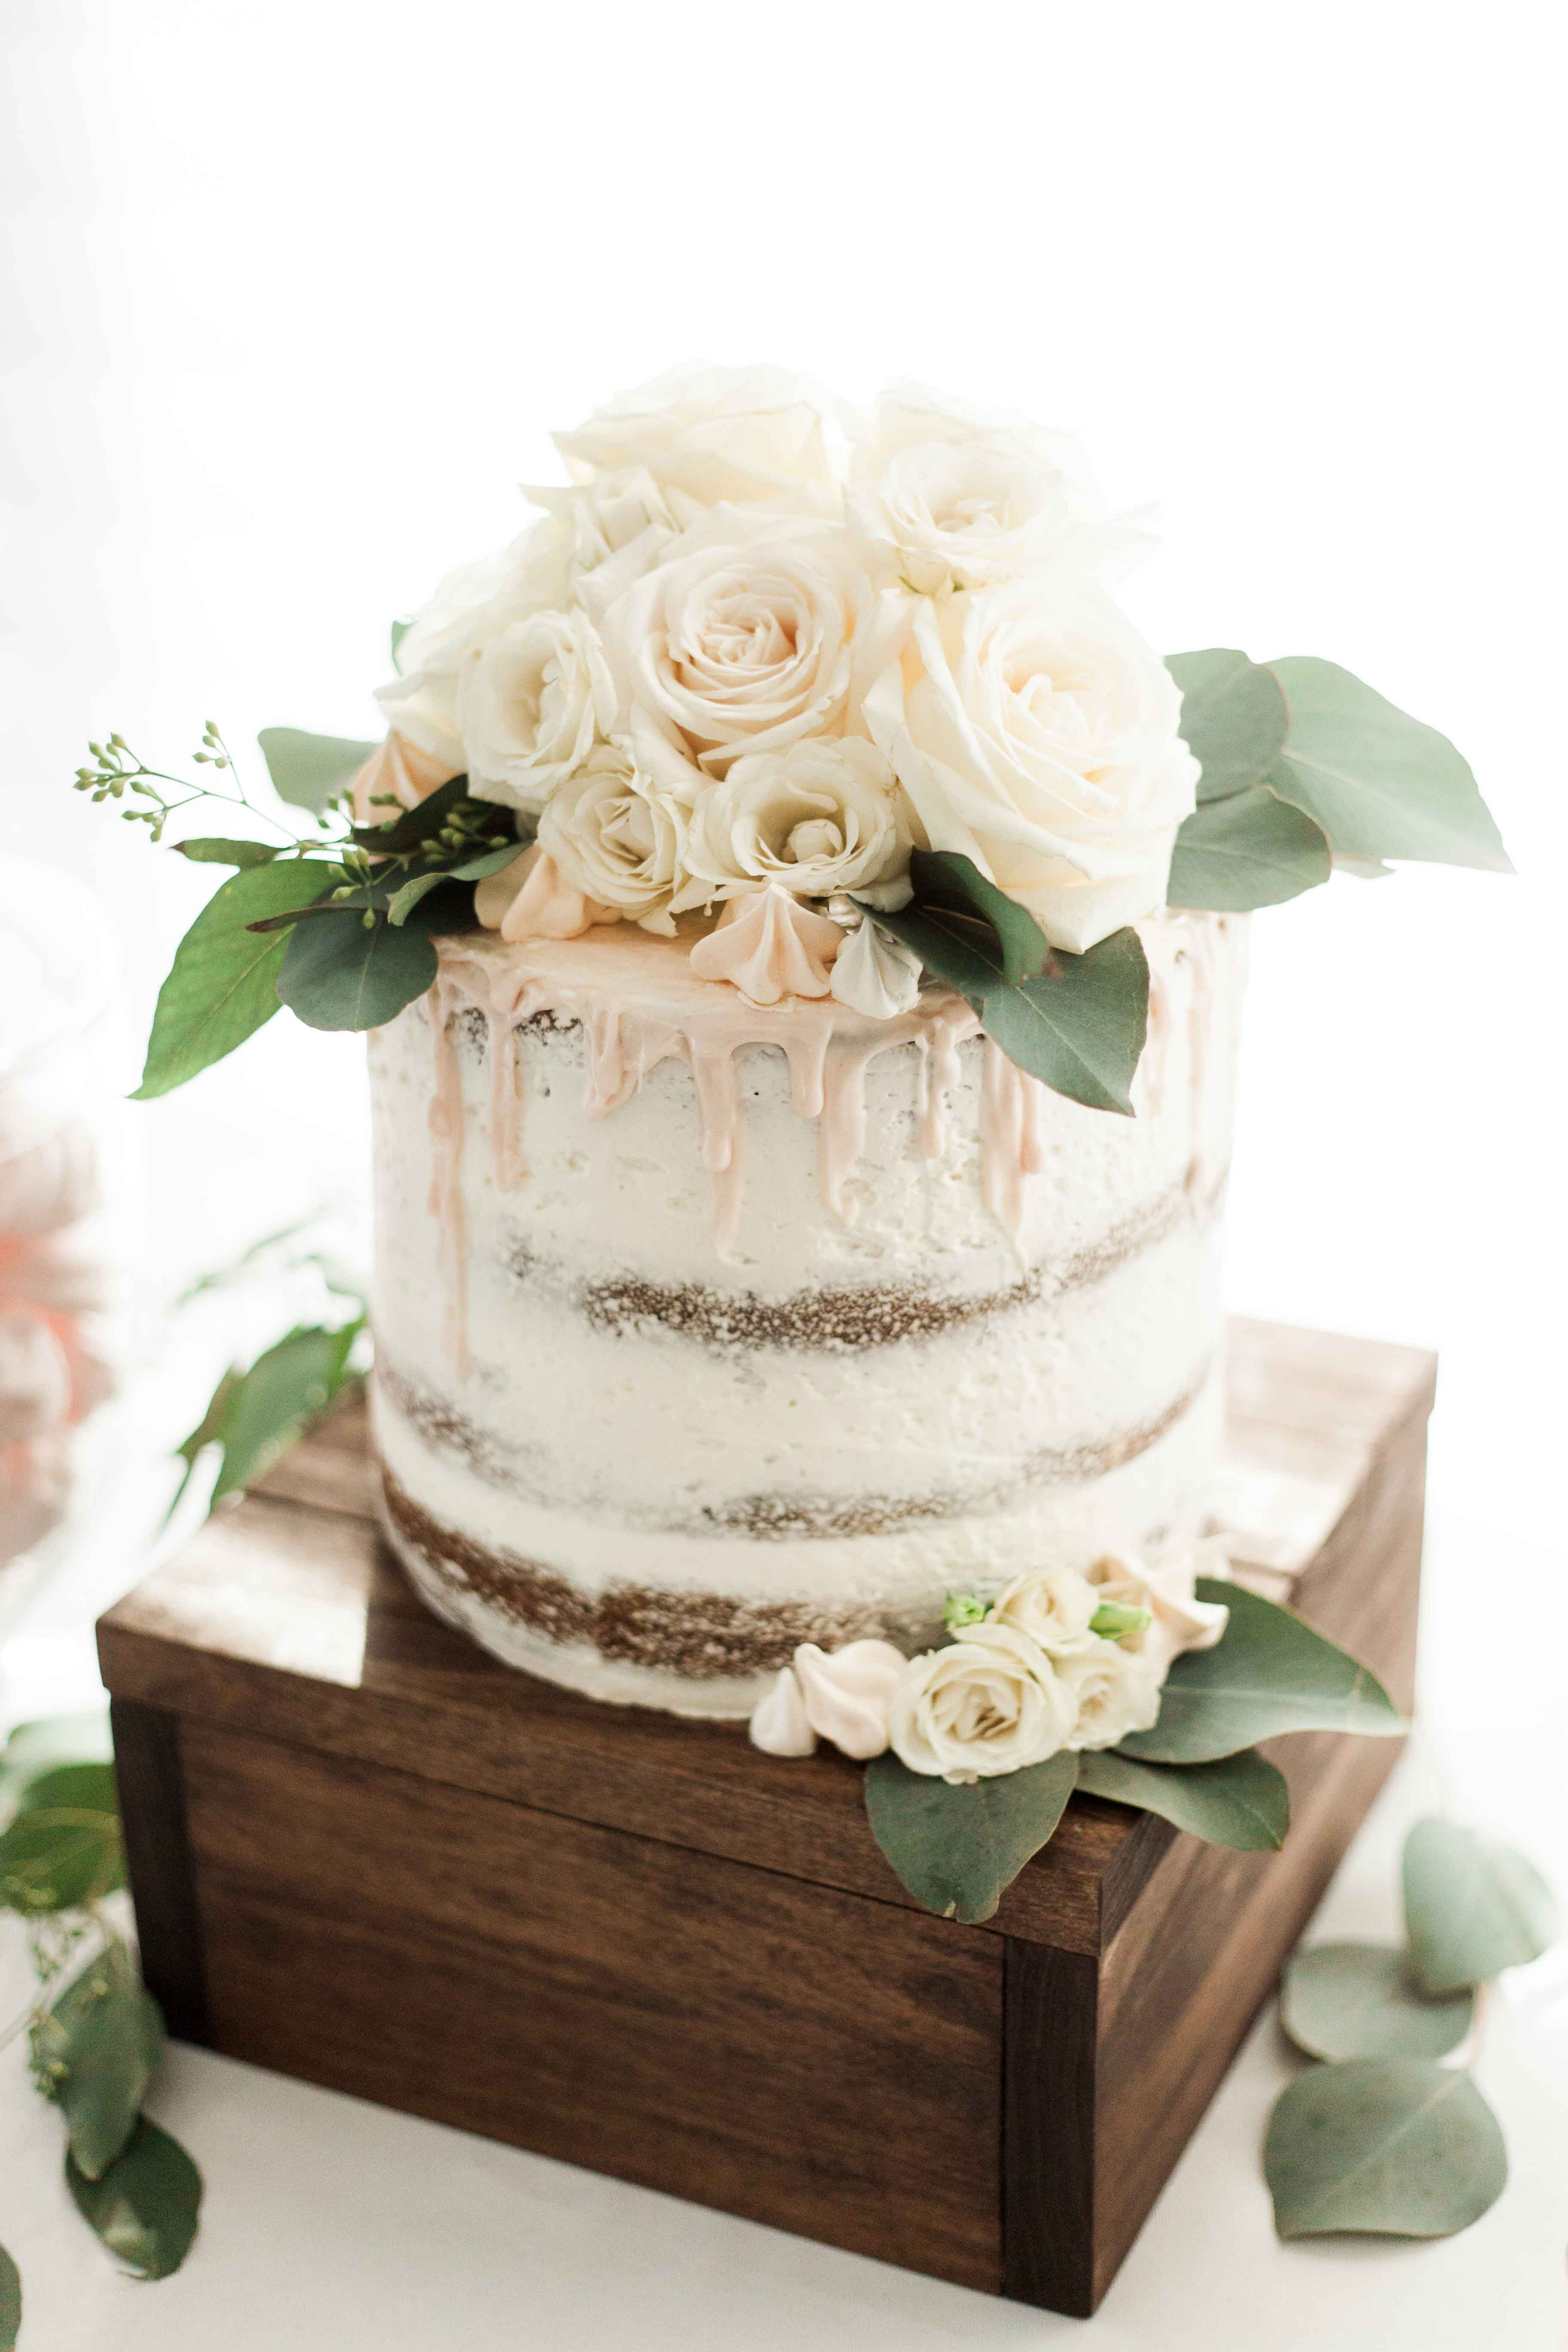 Award Winning Swansboro NC Bakery ♥ Weddings, Catering and more